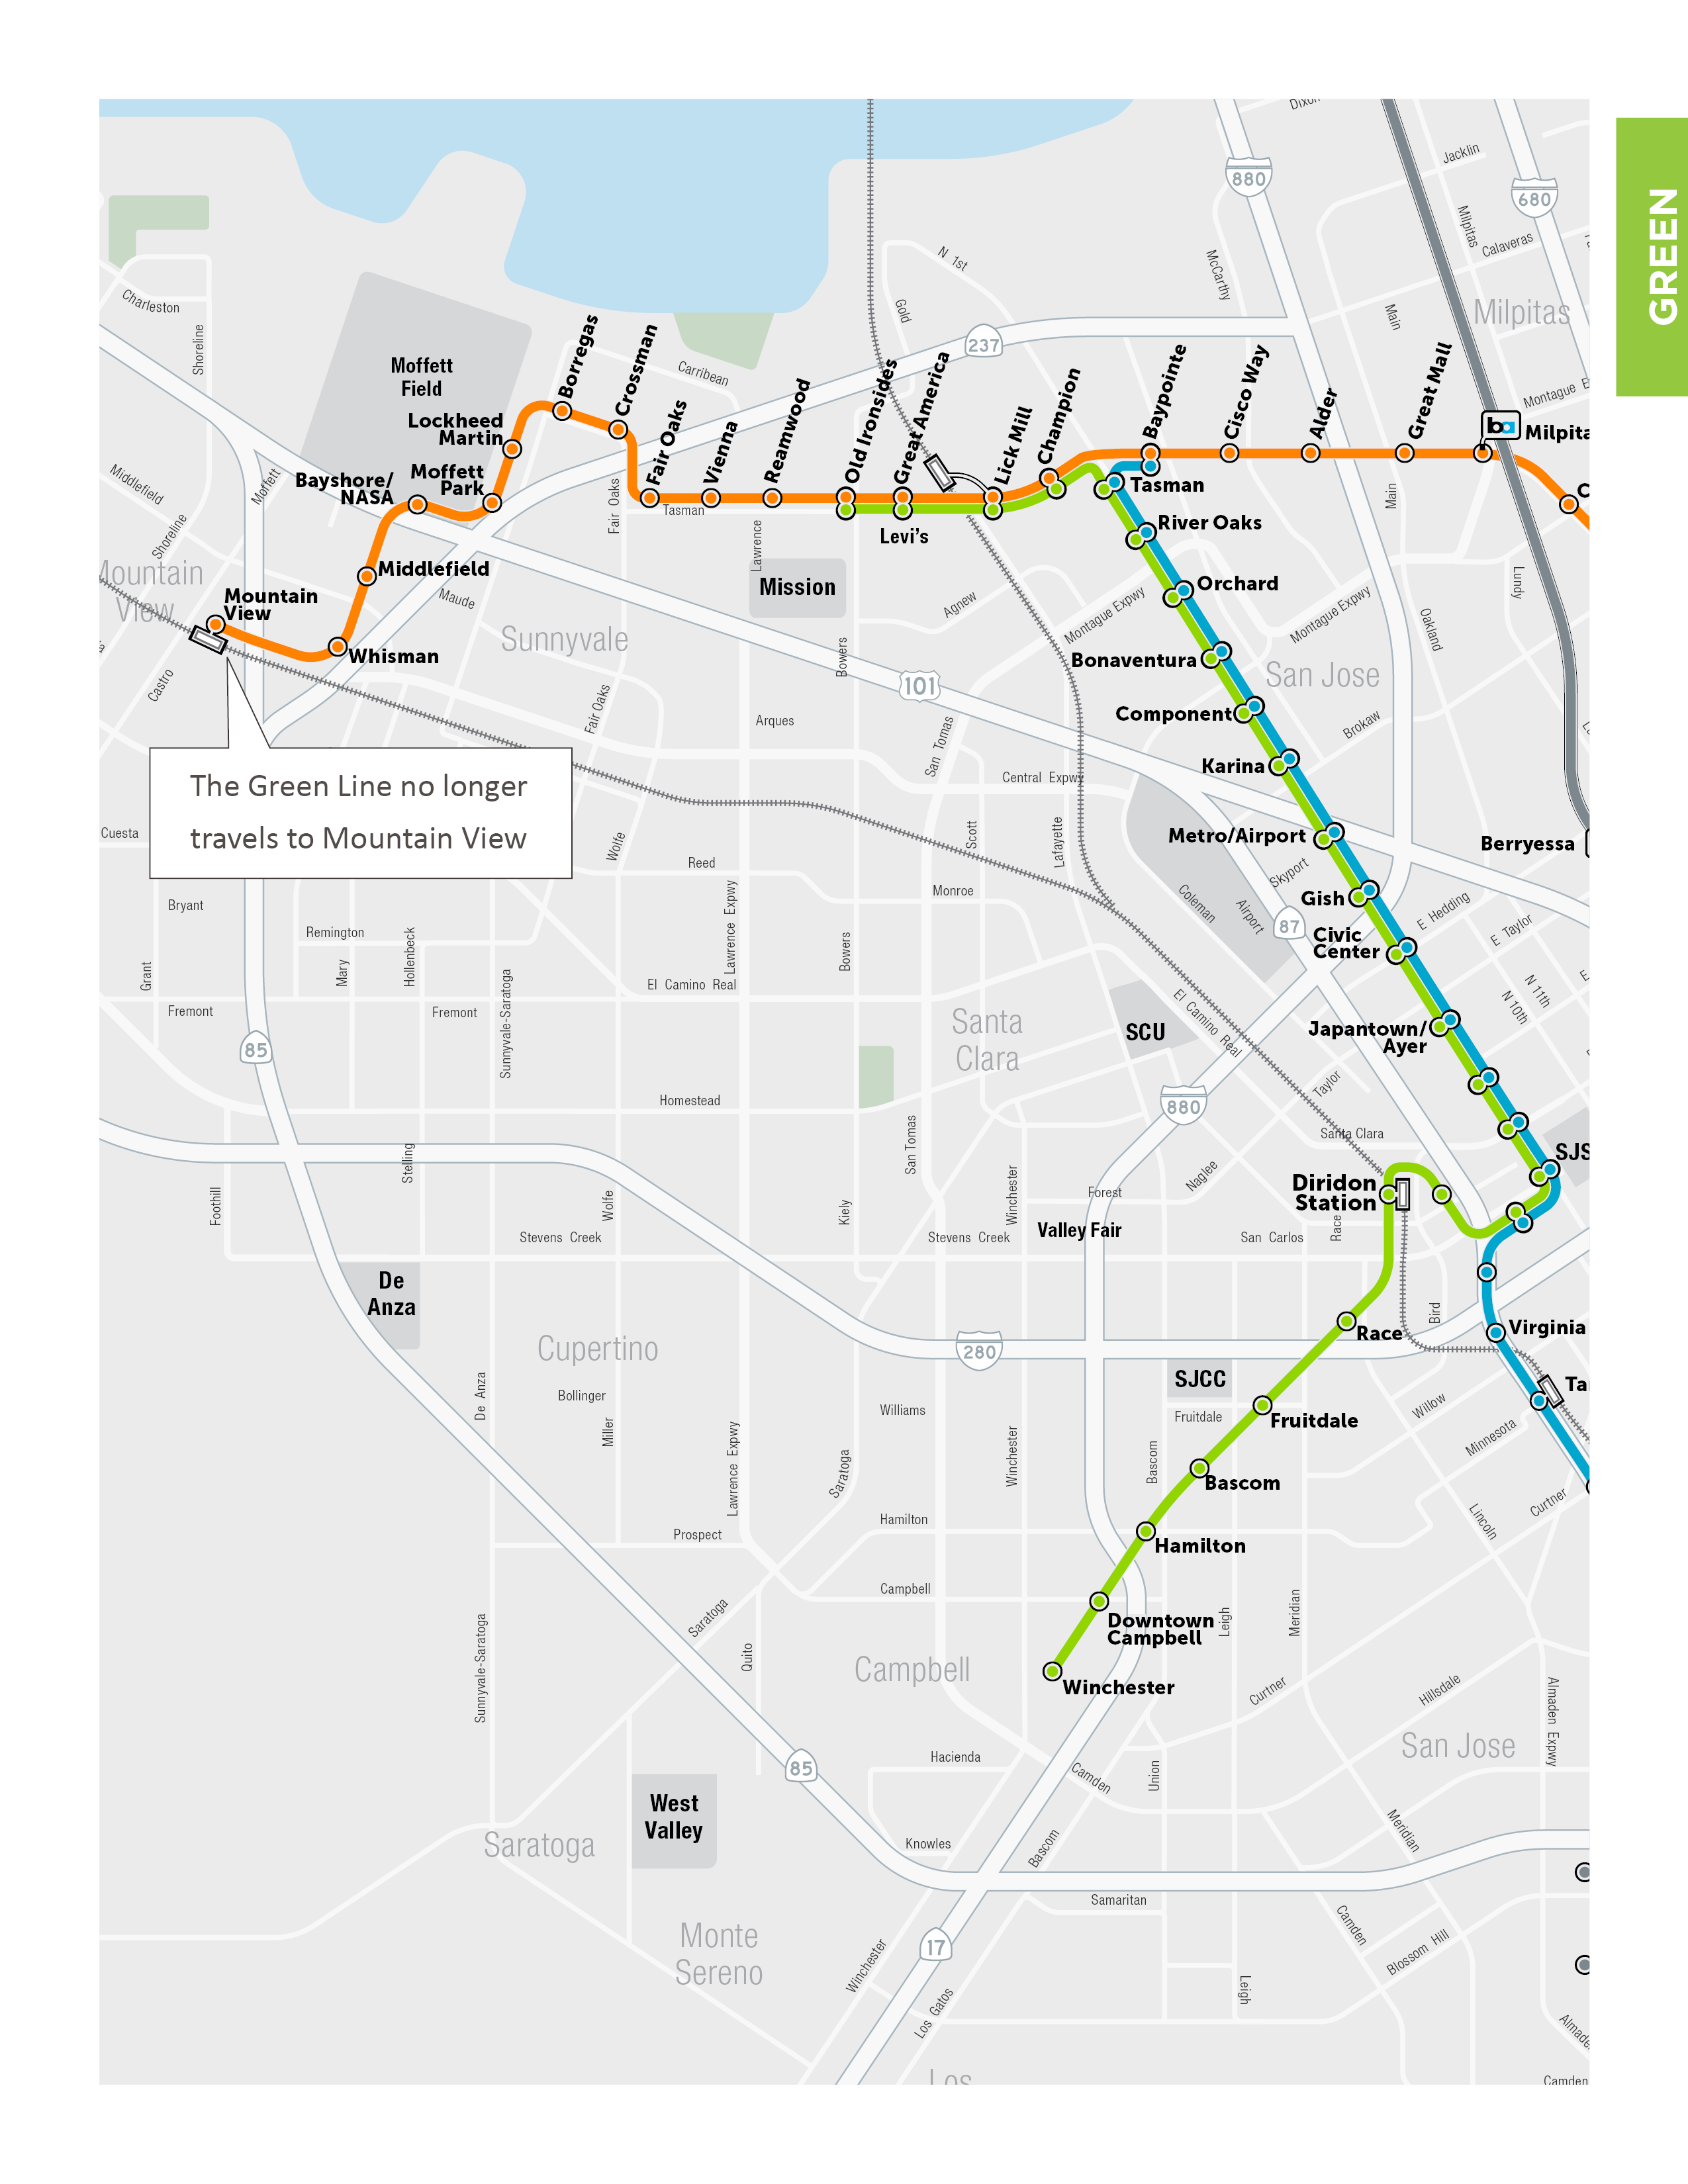 Map showing Green Line in the New Transit Service Plan running between Winchester and Old Ironsides stations